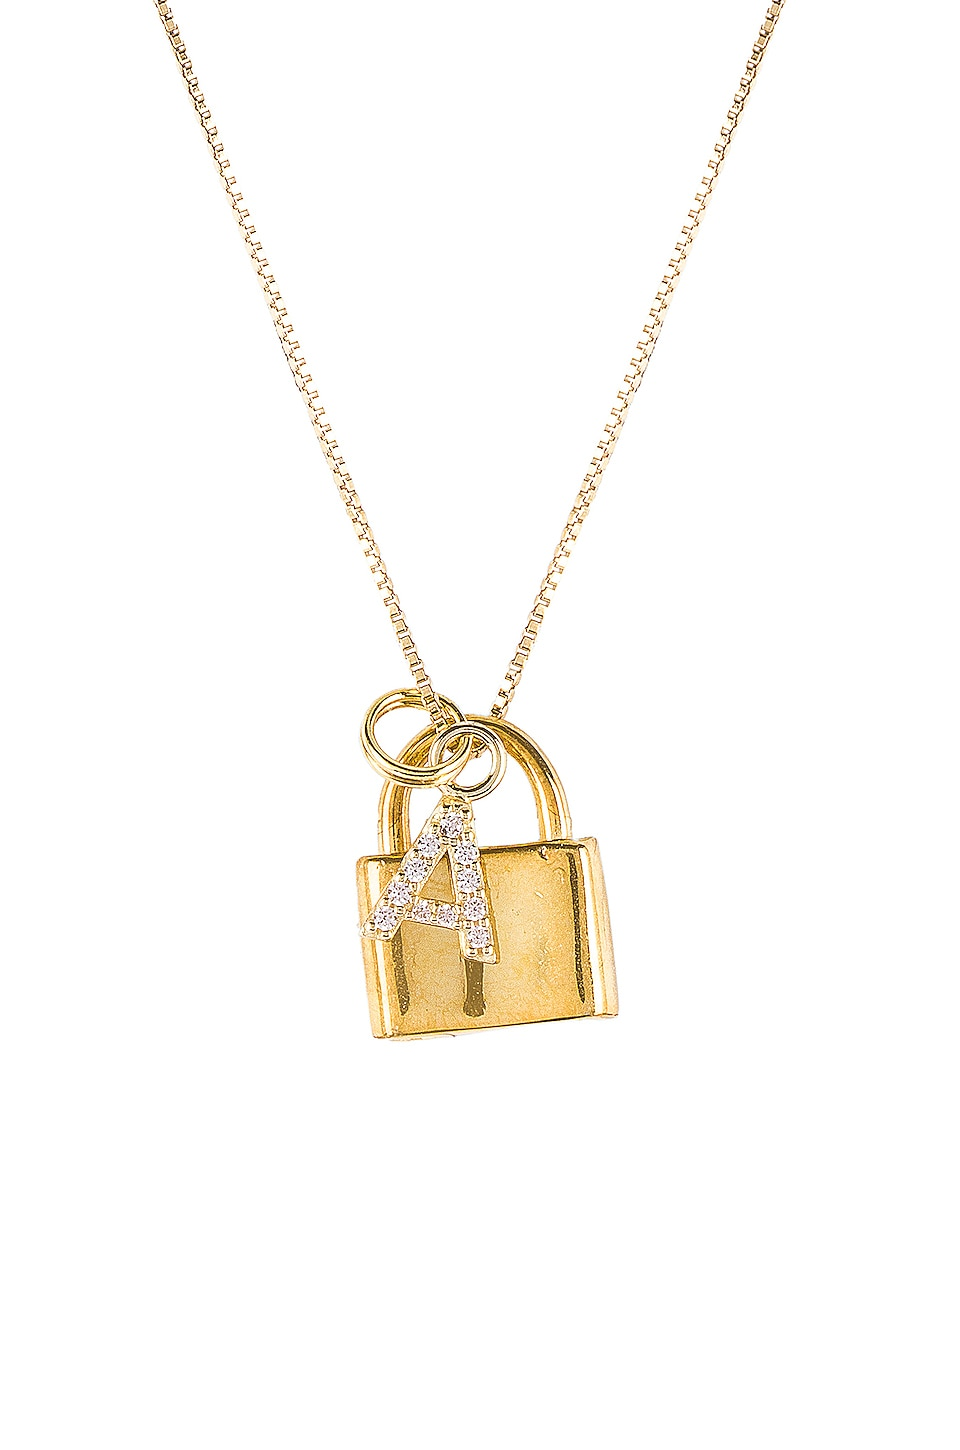 The M Jewelers NY The Lock A Initial Necklace in Gold